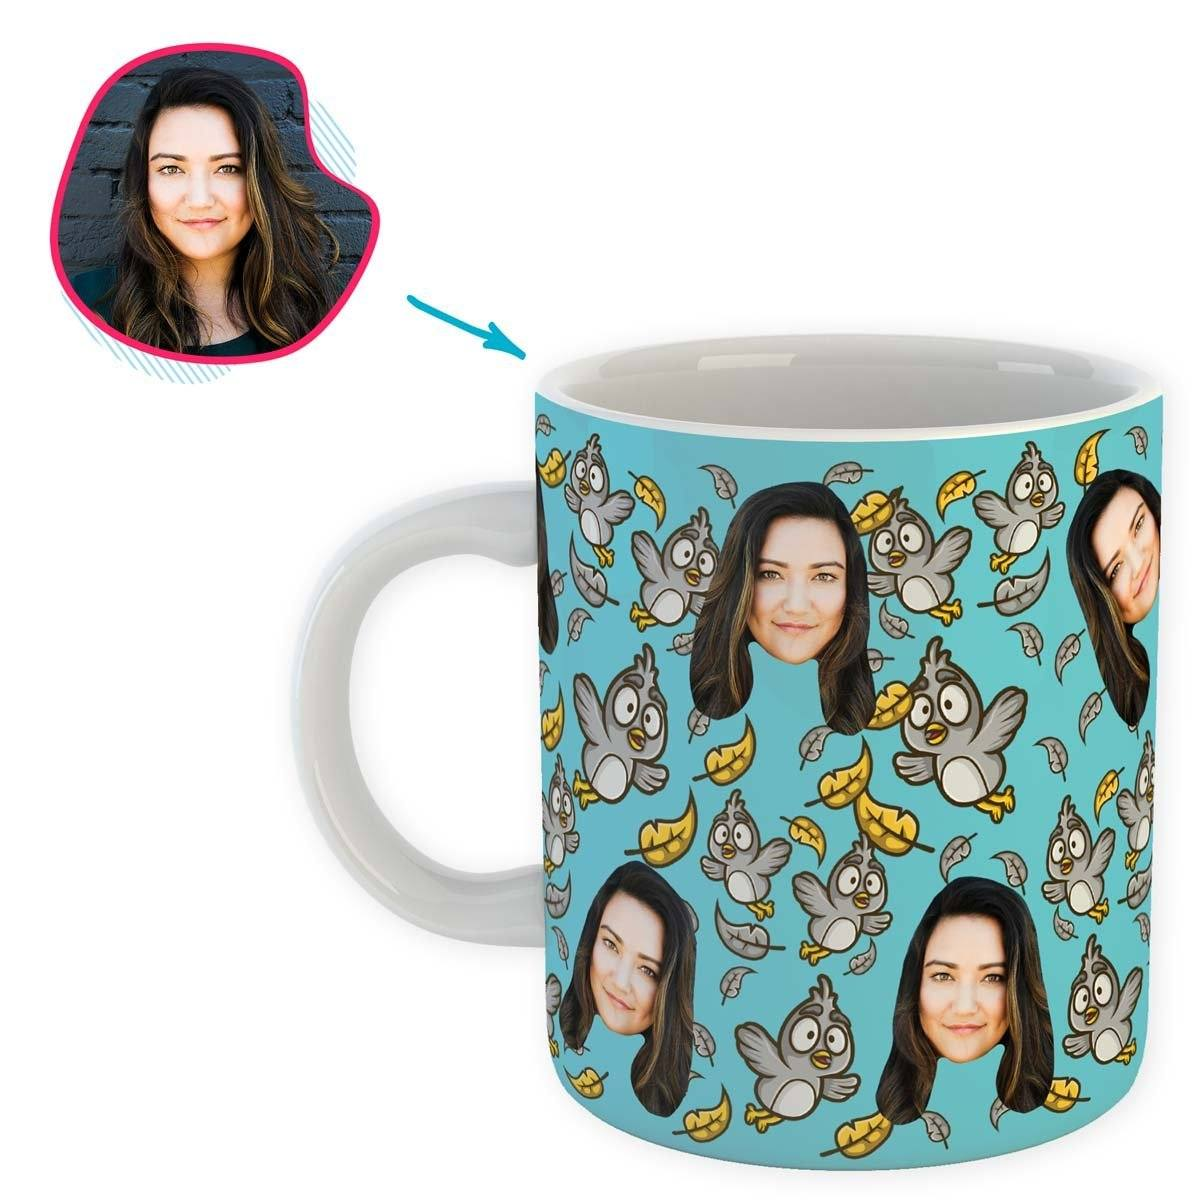 blue Bird mug personalized with photo of face printed on it